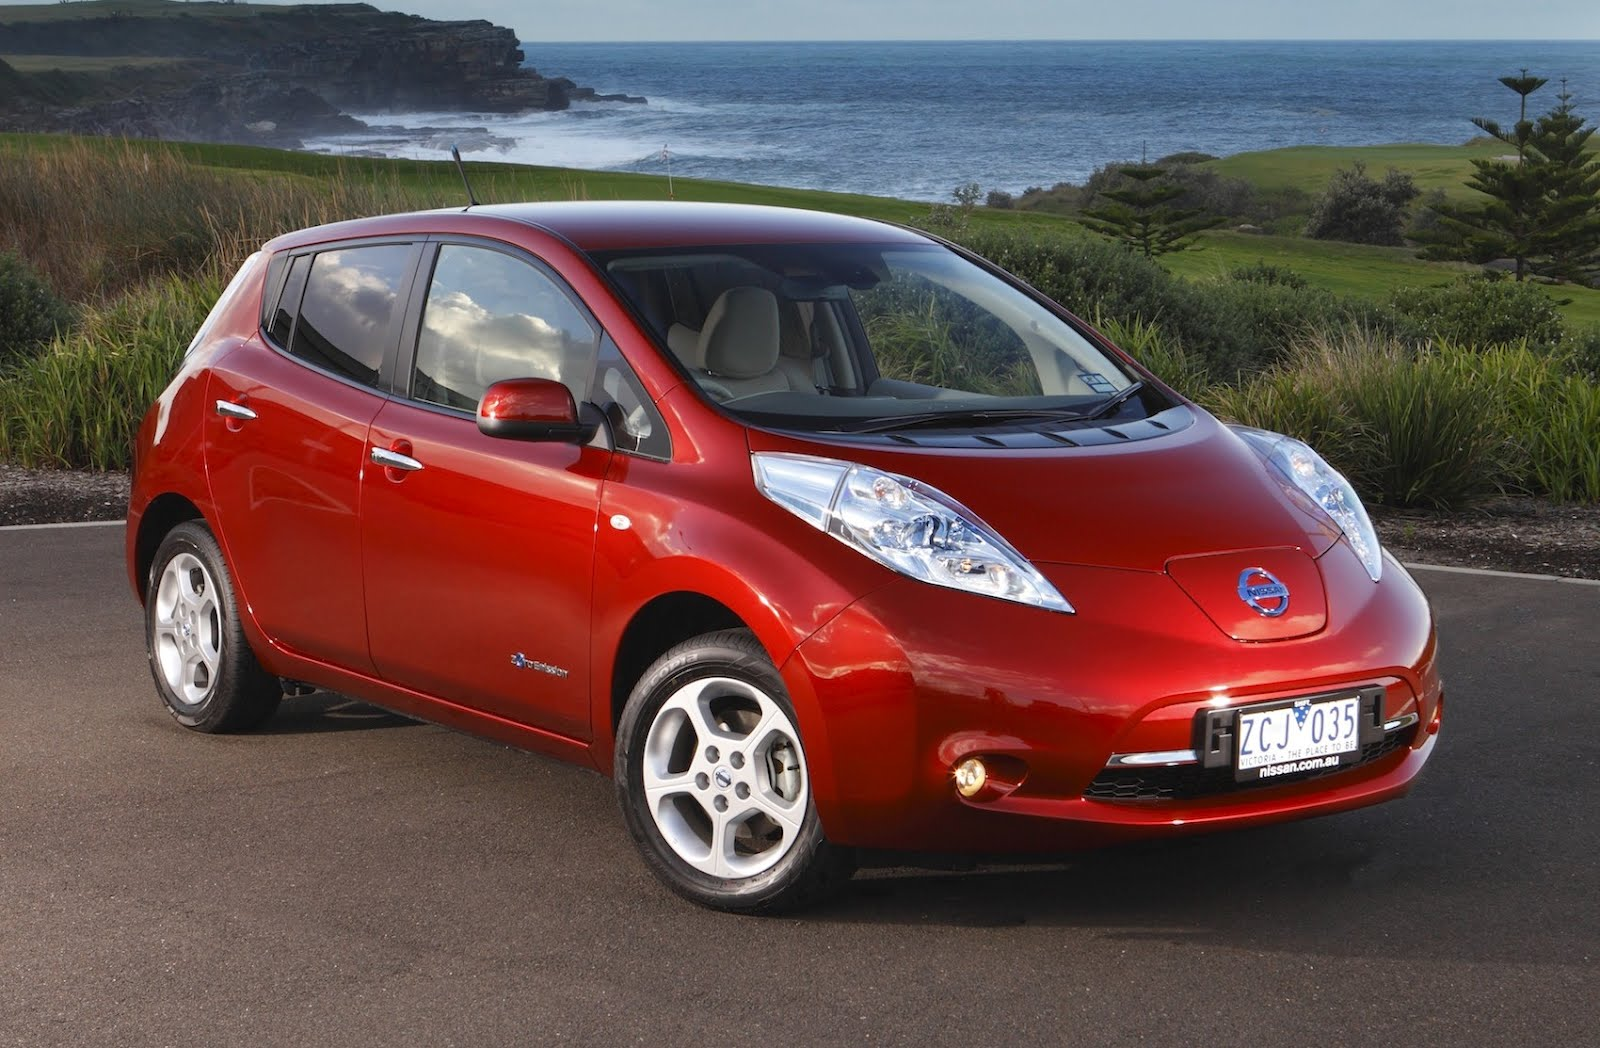 Nissan is offering discounted leases on 2012 model leaf to spur sales